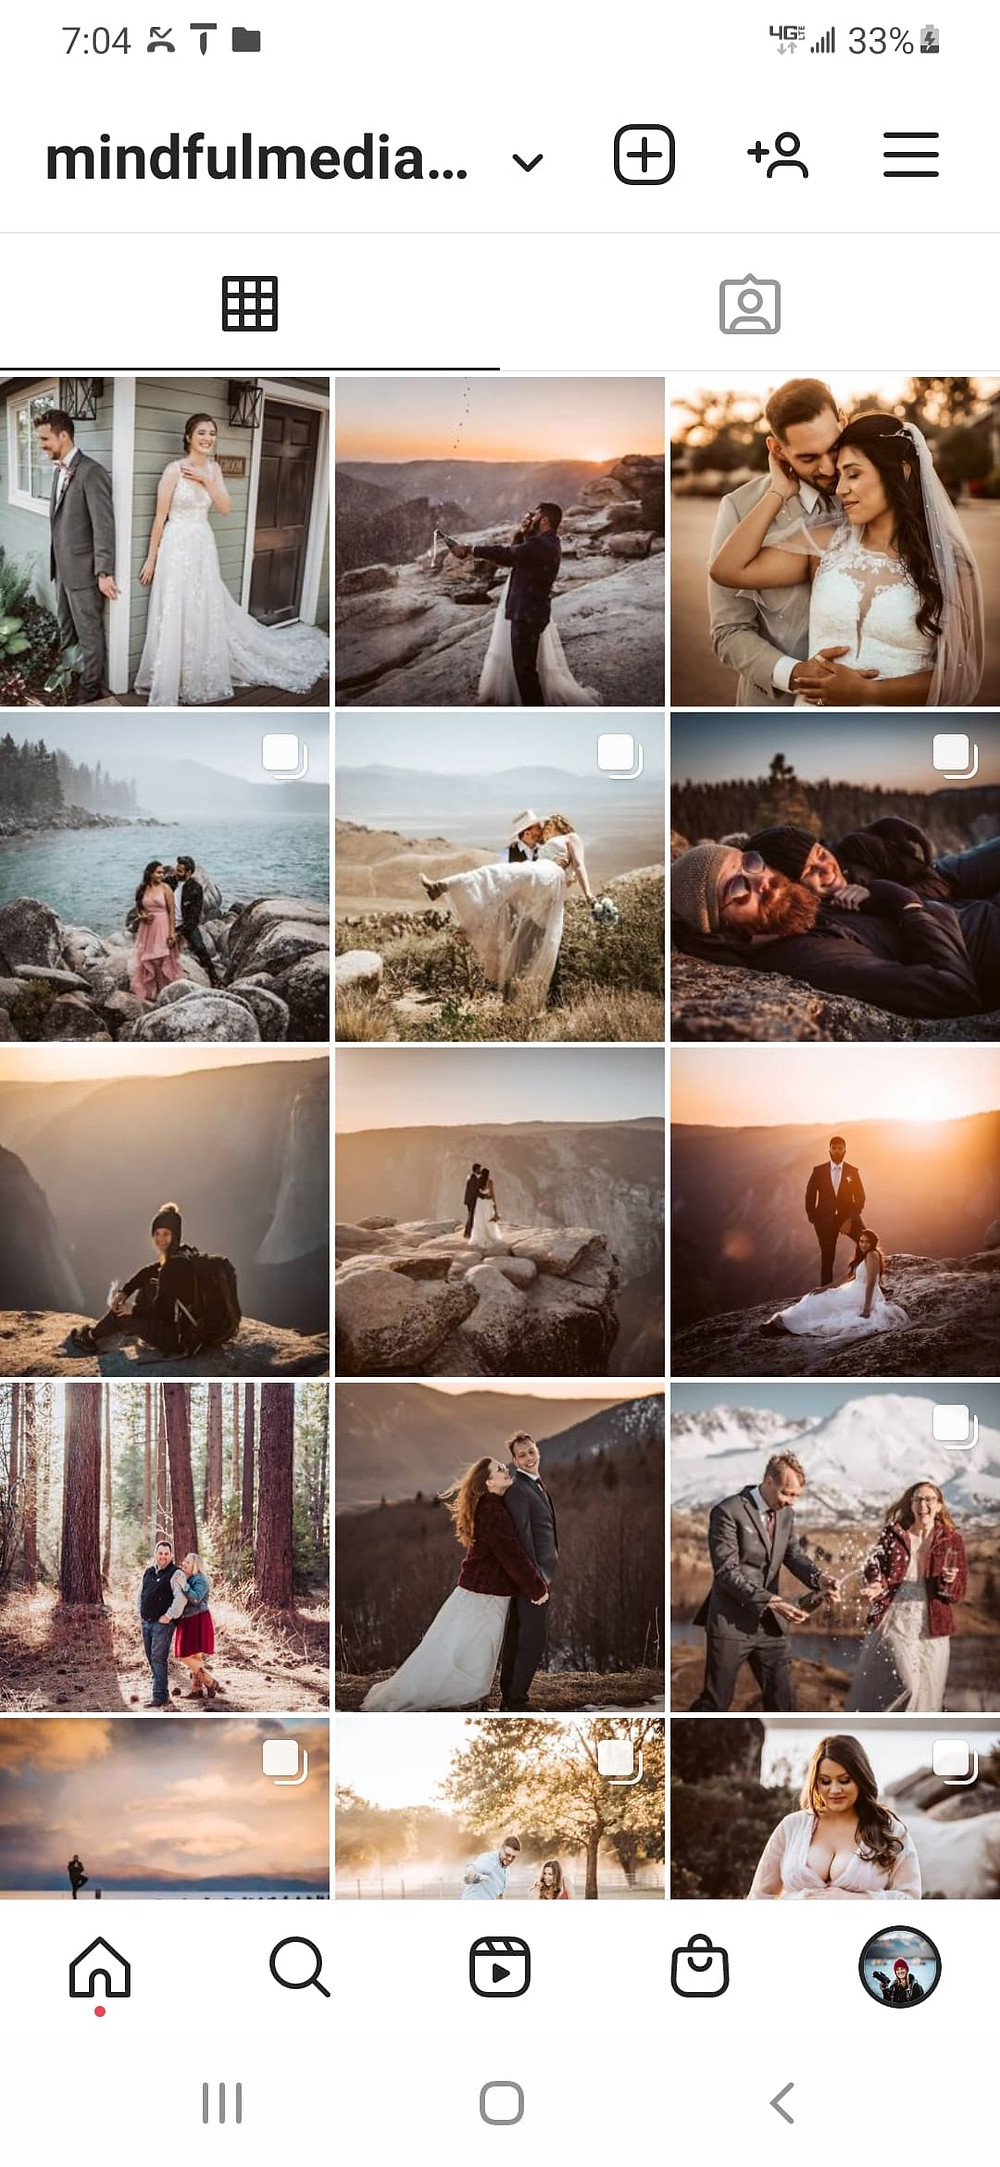 A sample of an instagram feed and what it looks like with pictures of wedding eloping couple for adventure elopements